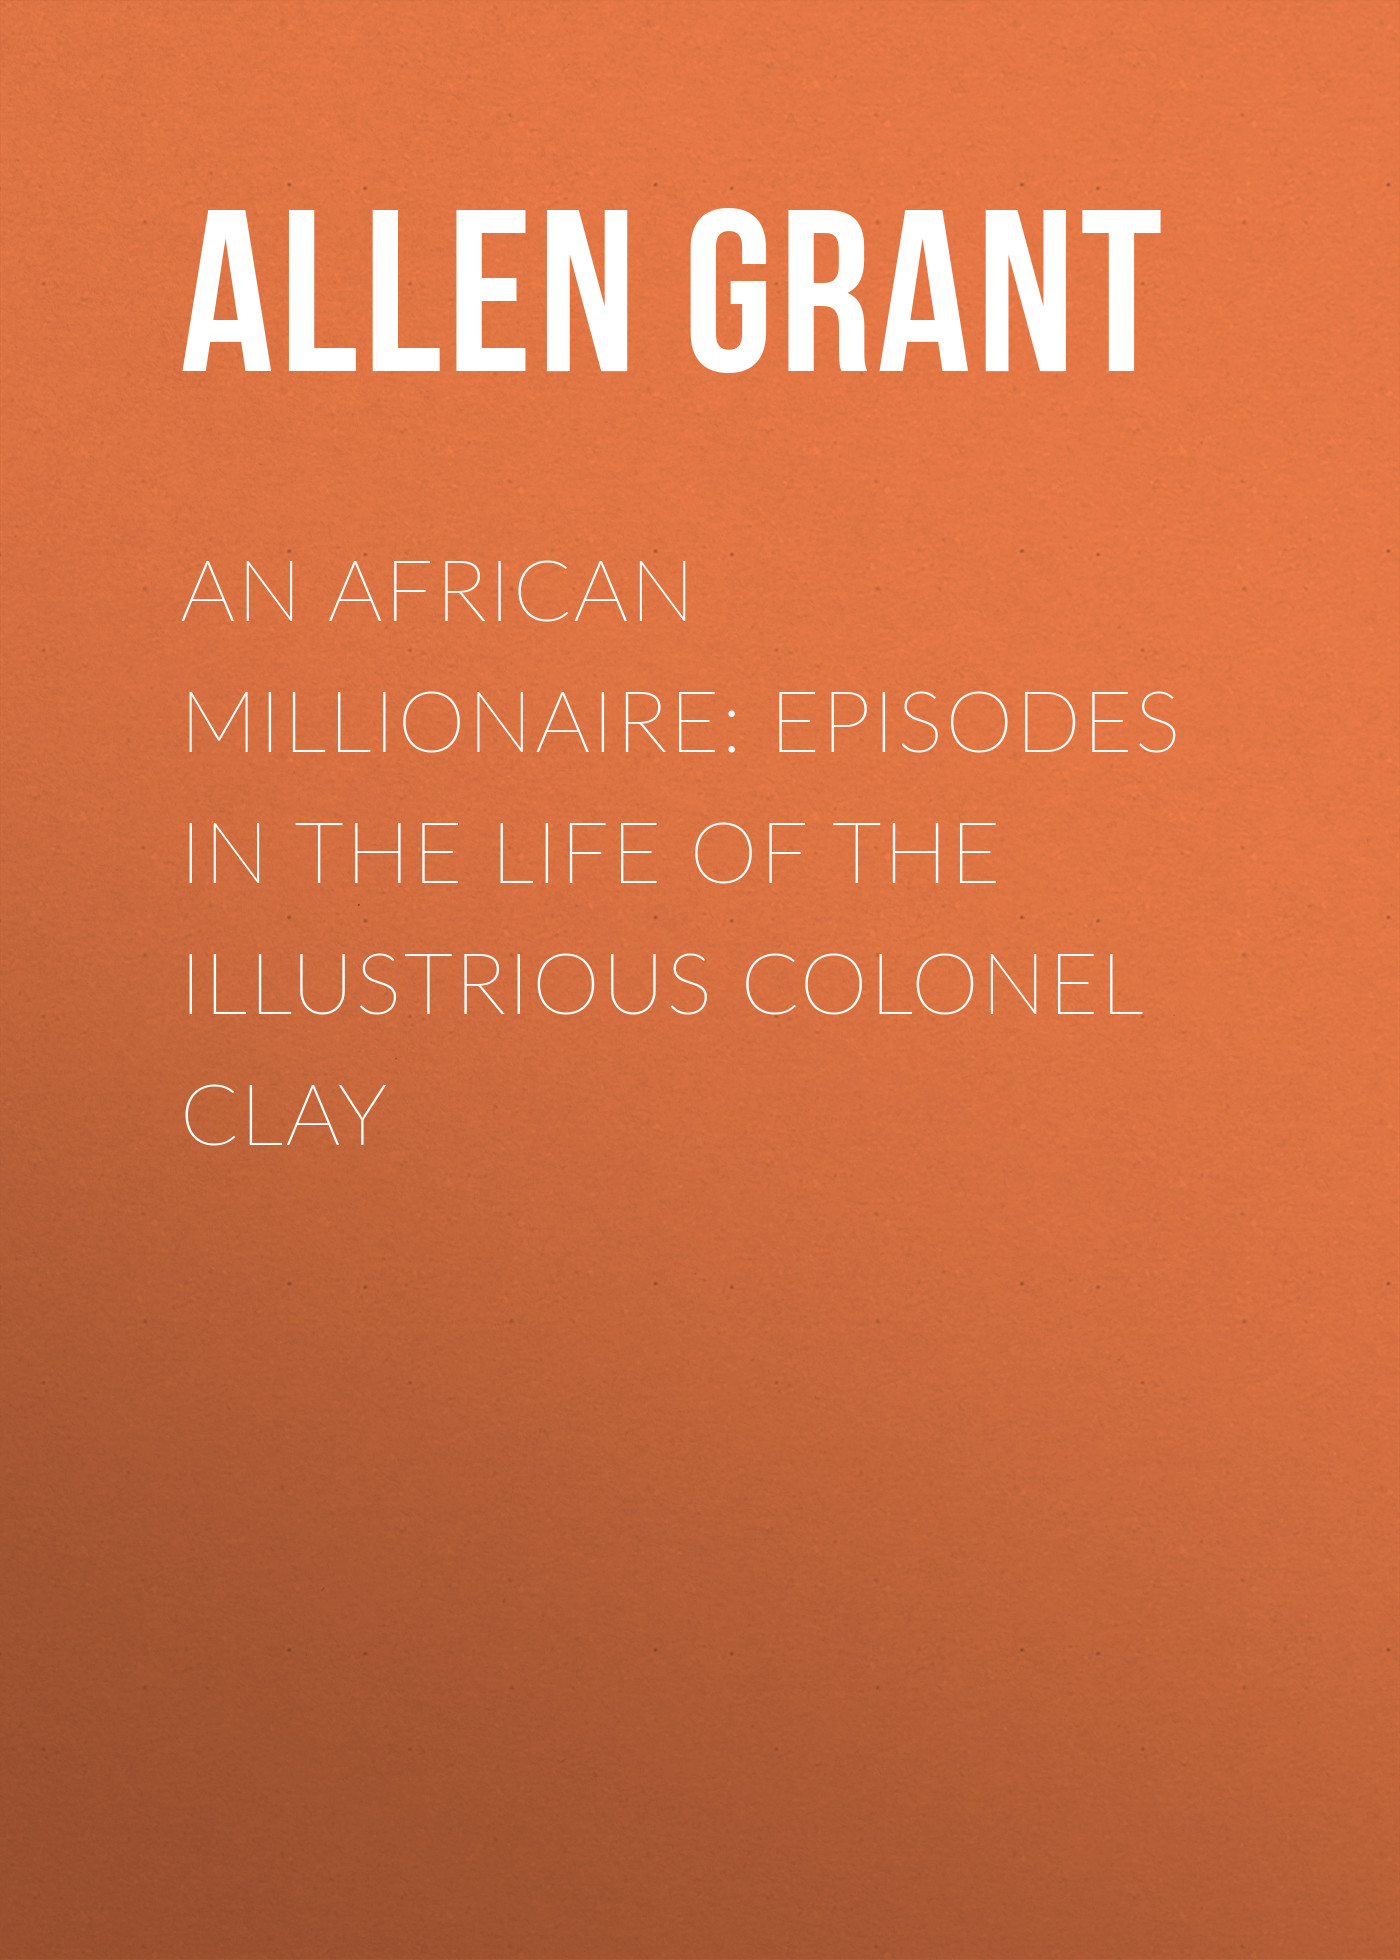 лучшая цена Allen Grant An African Millionaire: Episodes in the Life of the Illustrious Colonel Clay